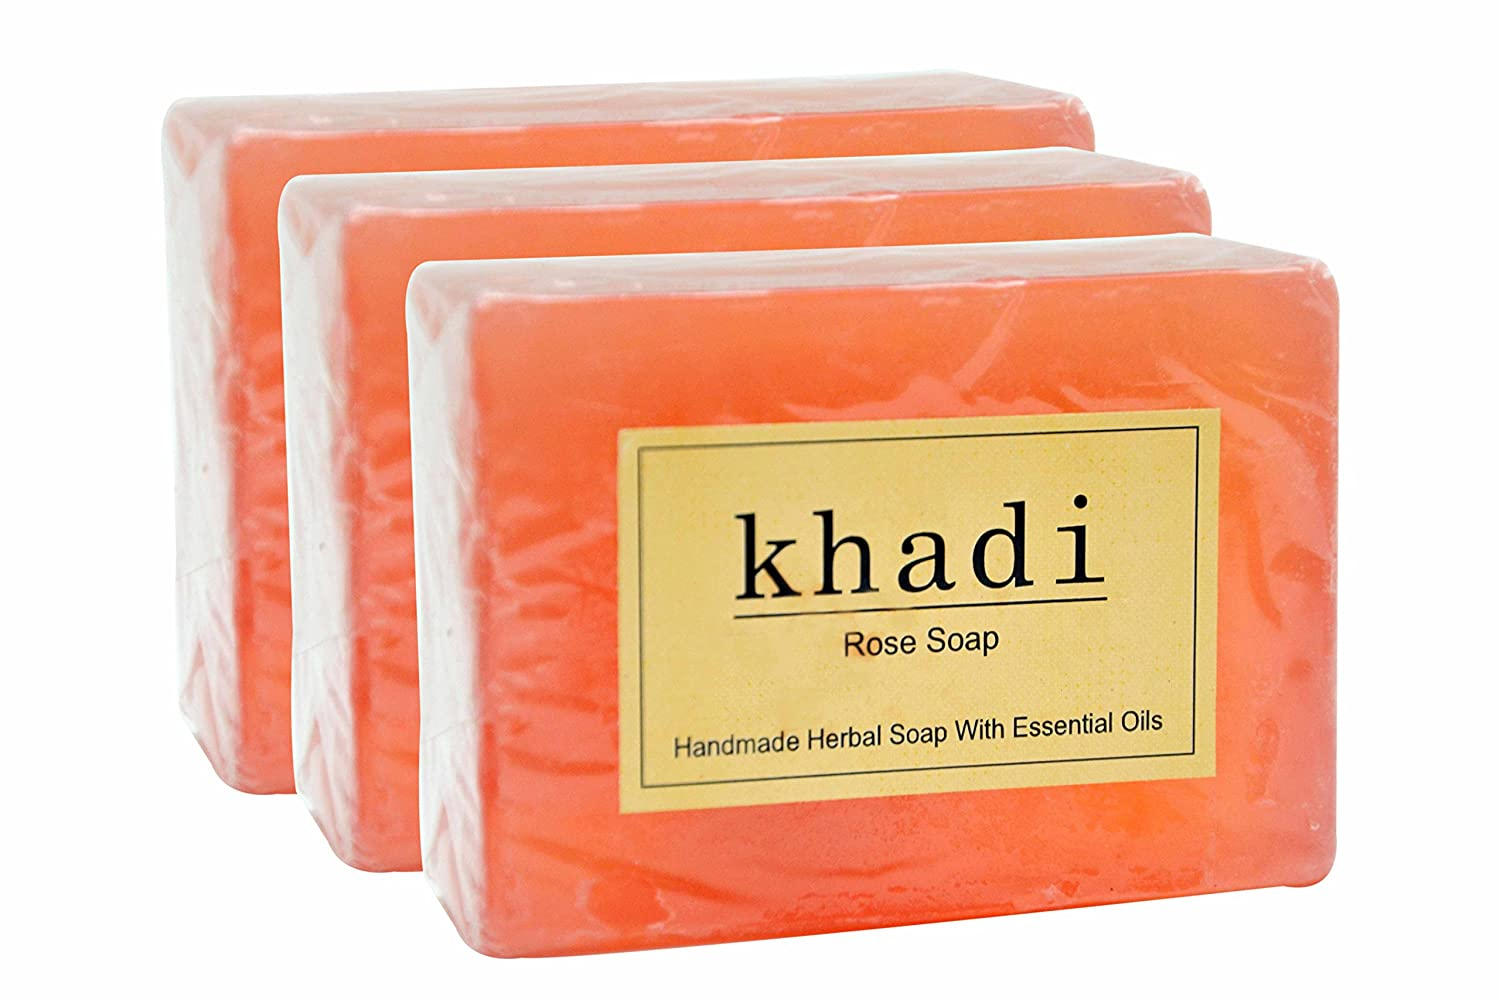 Khadi Rose Soap